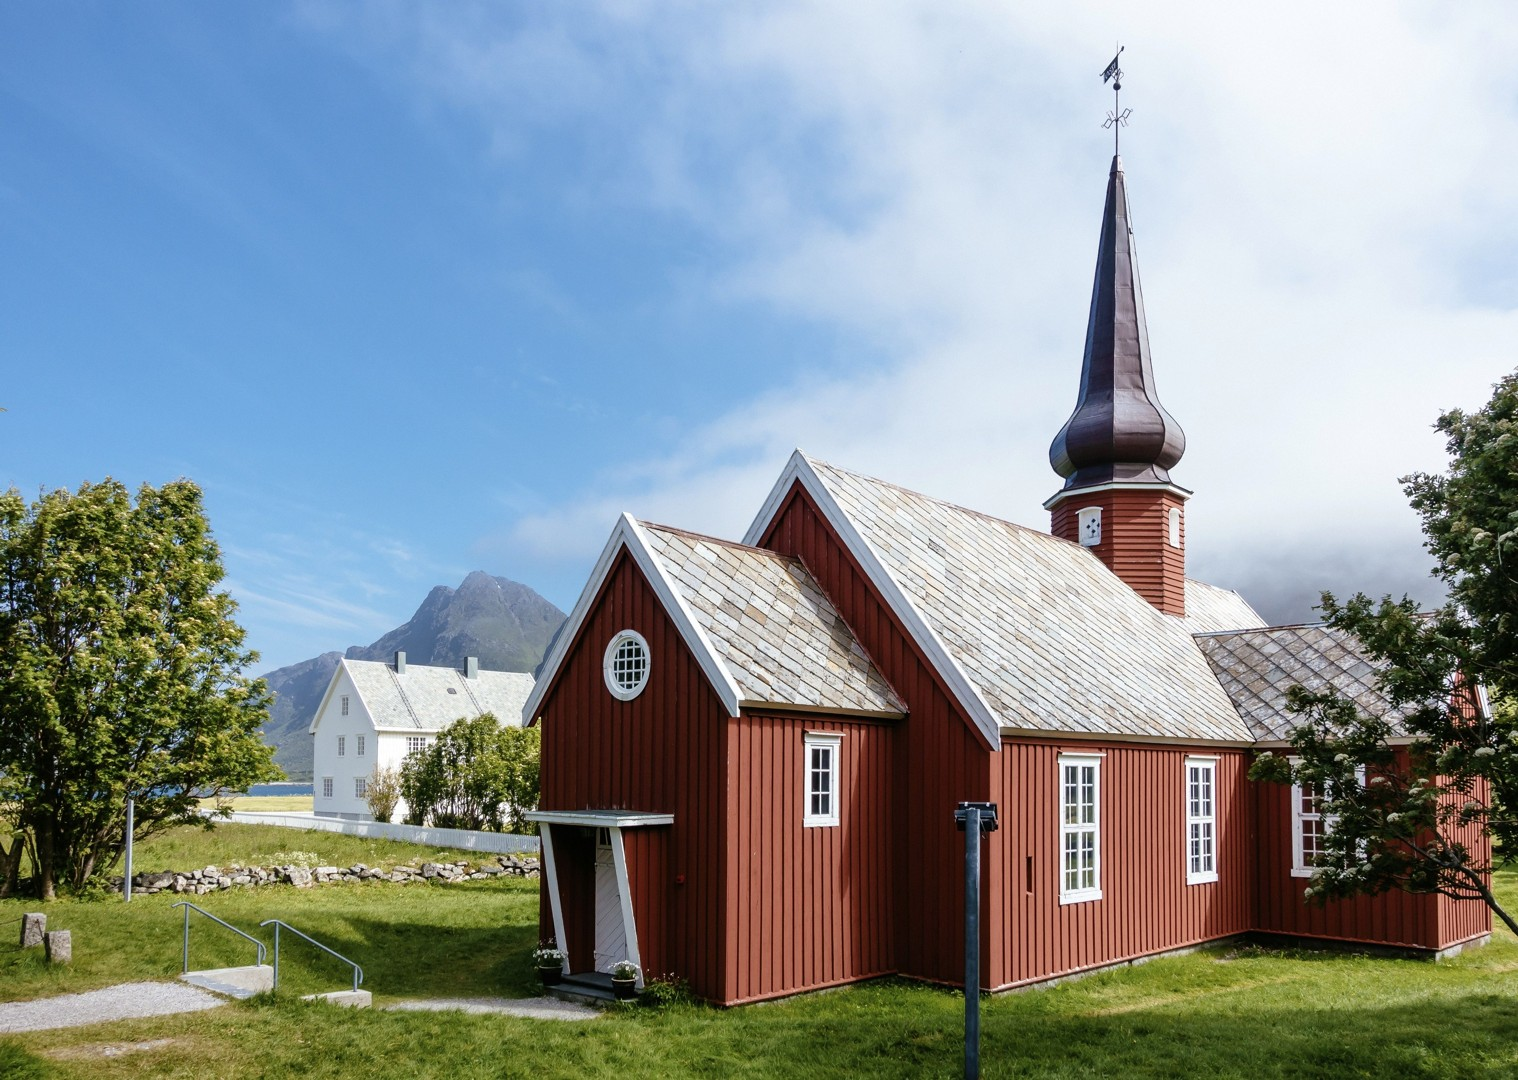 lofoten-islands-norway-3.jpg - Norway - Lofoten Islands - Biking with Vikings - Self-Guided Family Cycling Holiday - Family Cycling